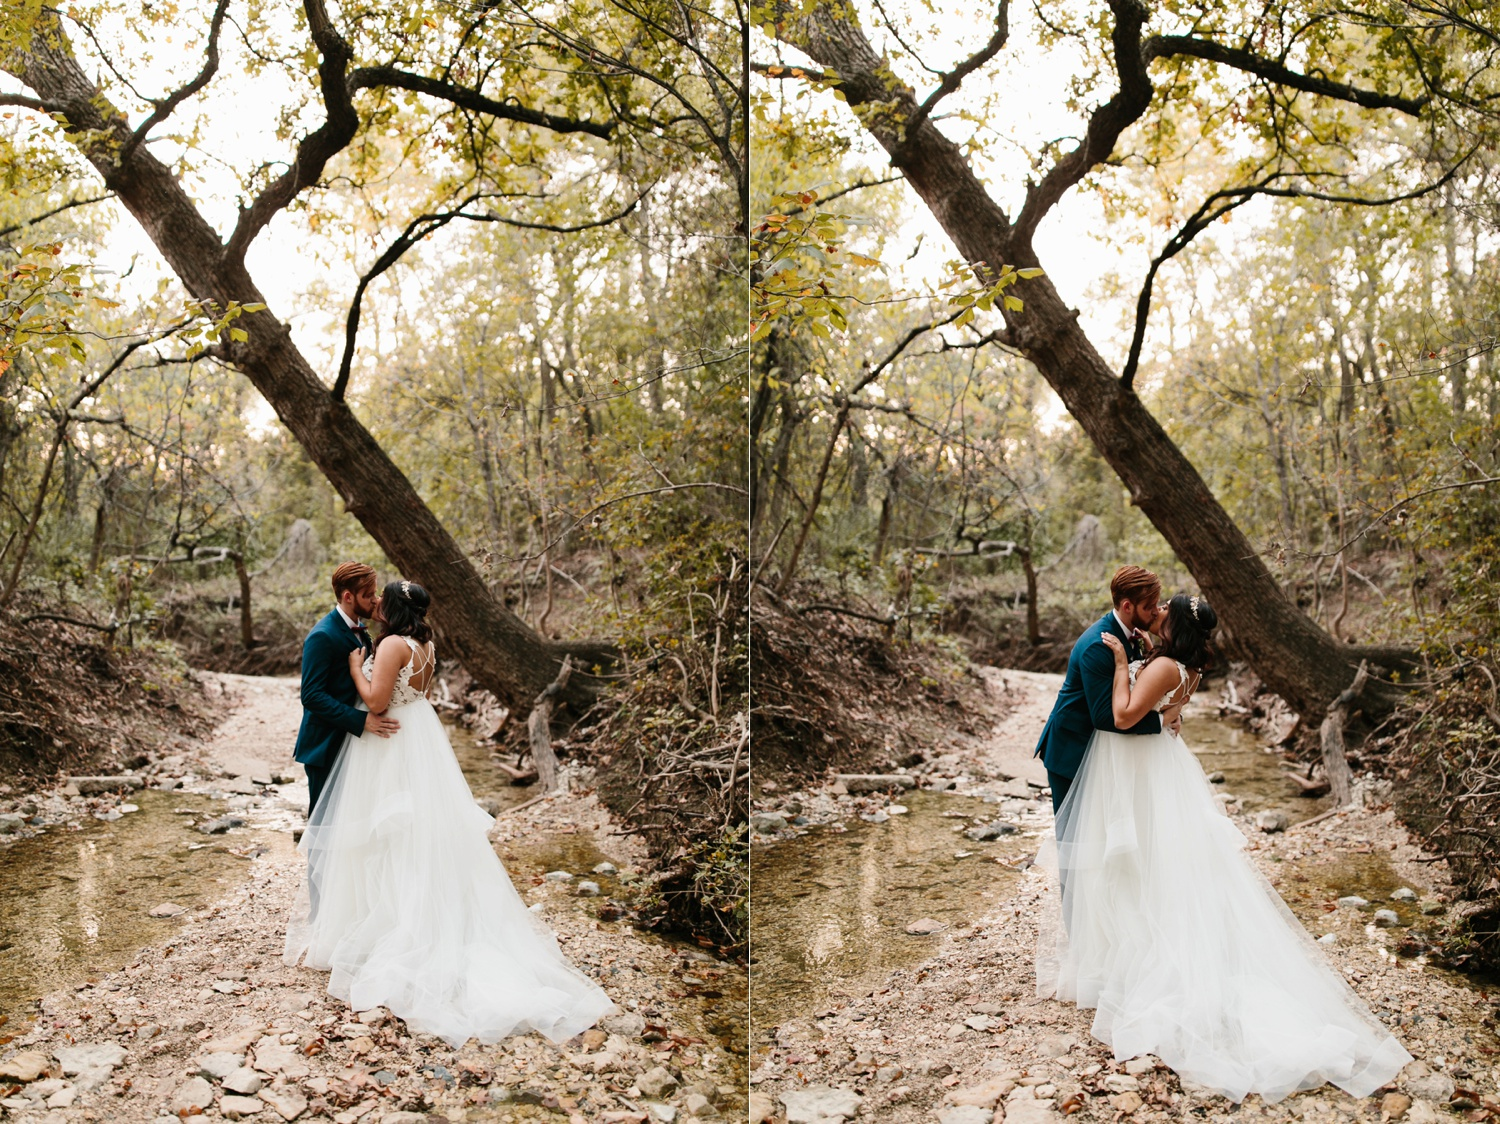 Grant + Lysette | a vibrant, deep burgundy and navy, and mixed metals wedding at Hidden Pines Chapel by North Texas Wedding Photographer Rachel Meagan Photography 251